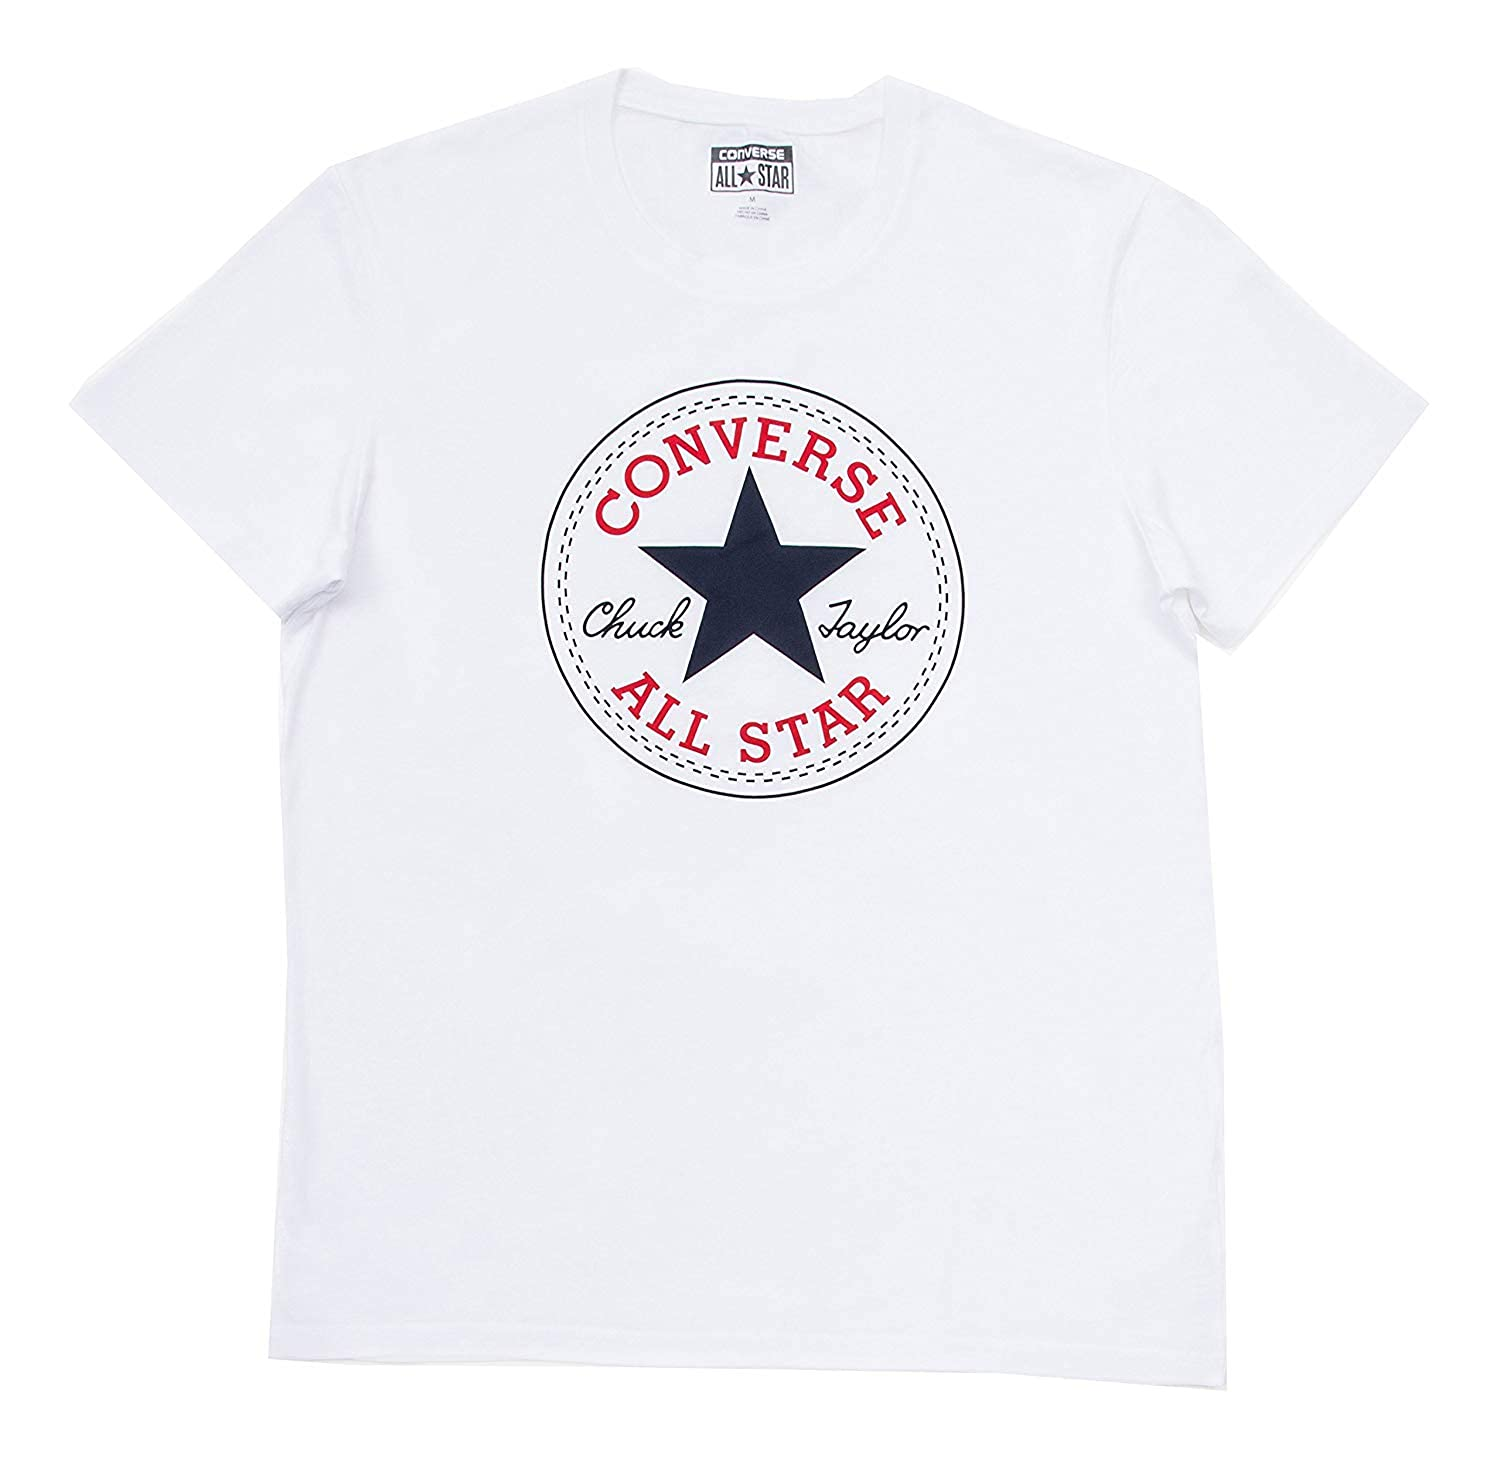 cb7e1b73af7a Amazon.com  Converse Chuck Taylor All Star Men s Patch Logo T Shirt   Clothing